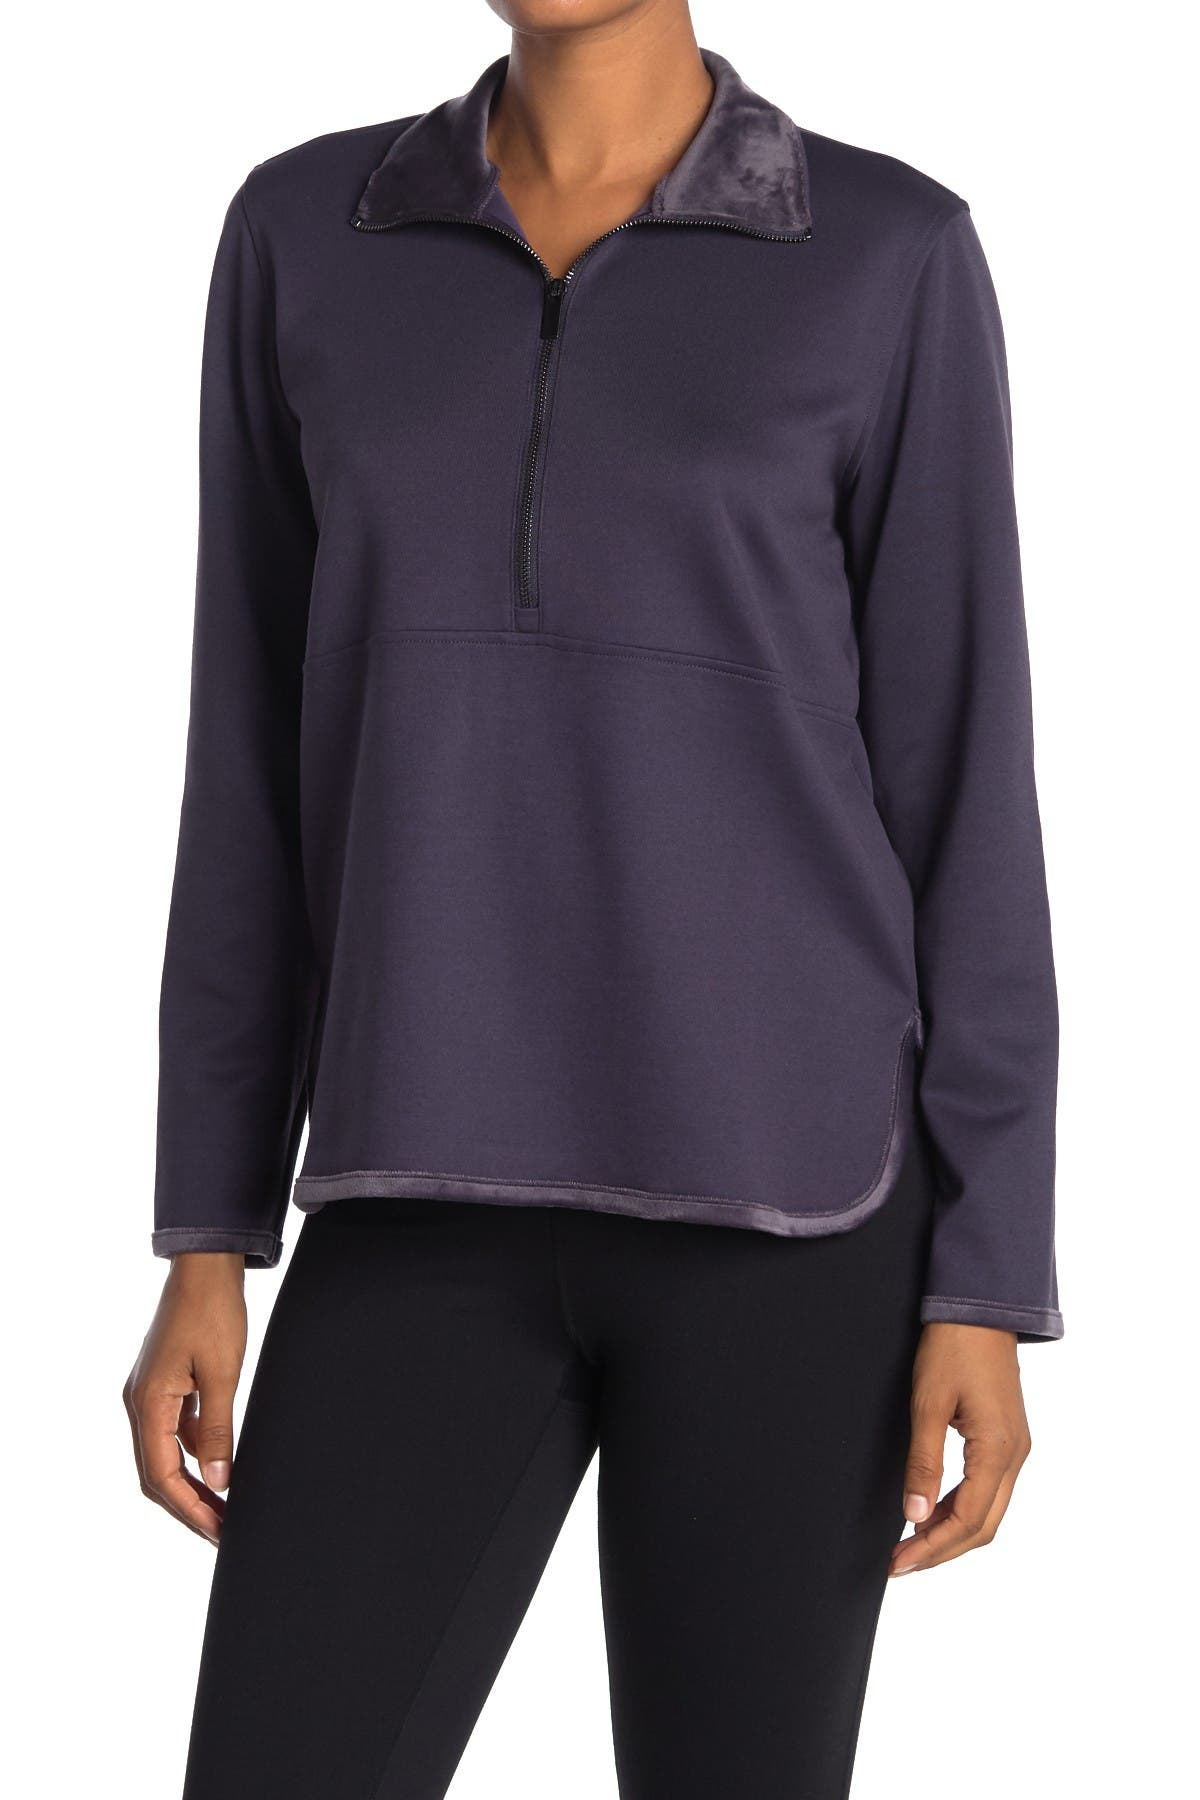 Image of New Balance Determination Luxe Layer 1/4 Zip Pullover